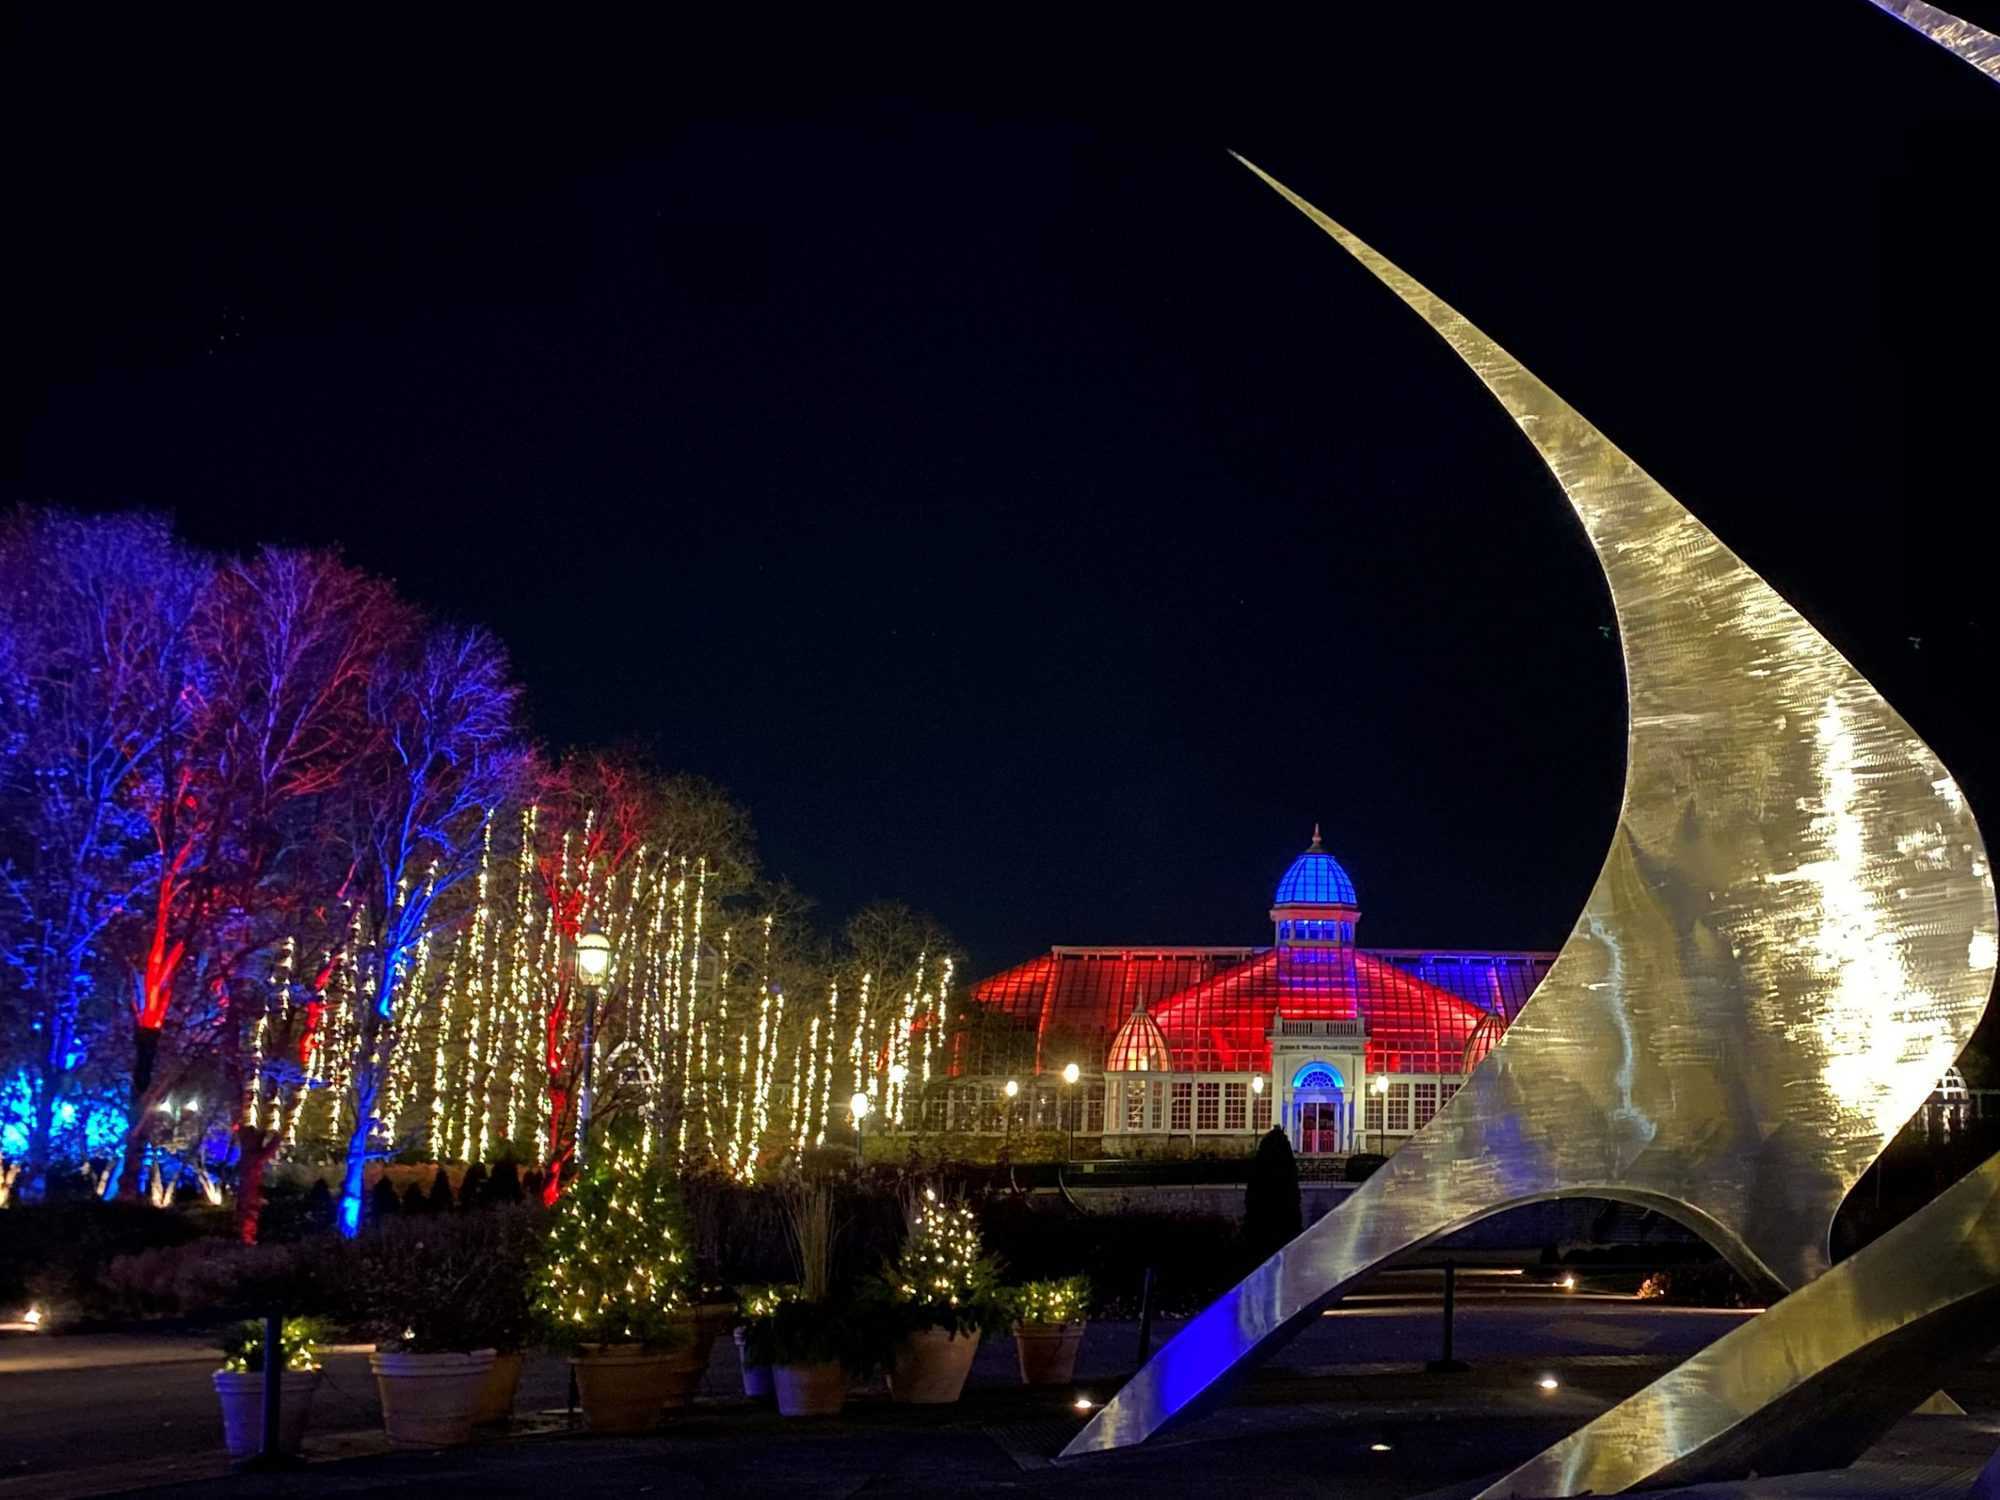 franklin park conservatory aglow and